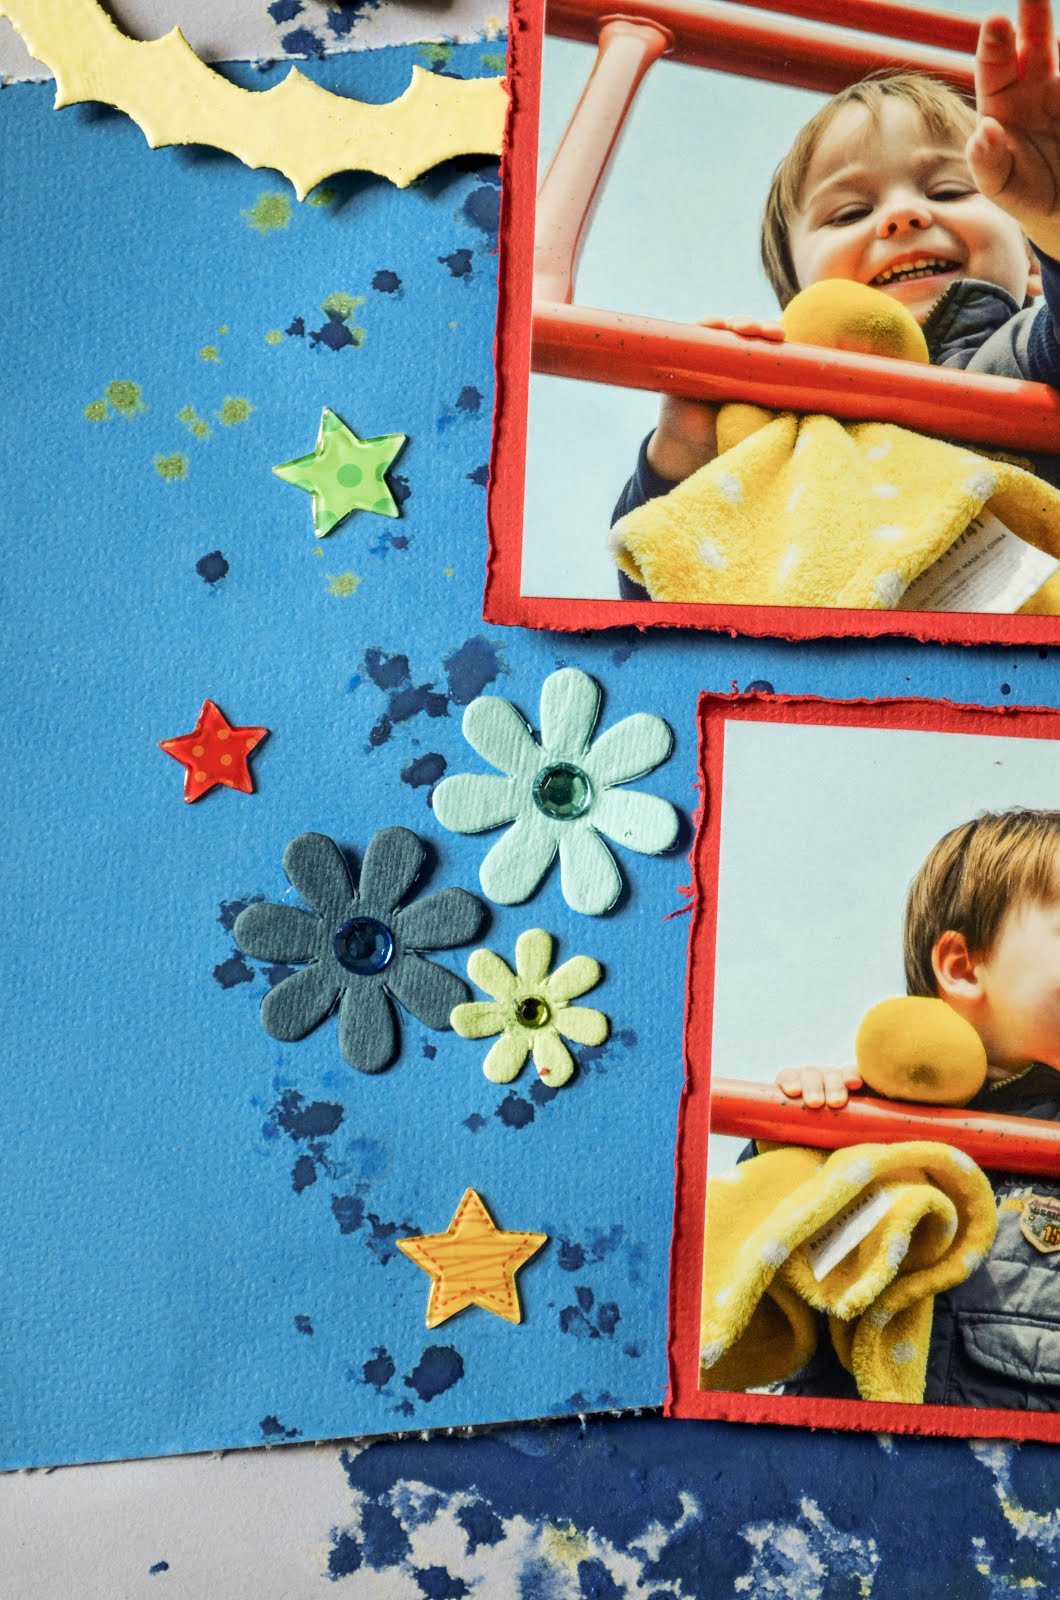 Boy scrapbook layout in primary colors (red, blue, yellow) with acrylic paint, embossed chipboard sun, and flowers with glittery hearts and flowers